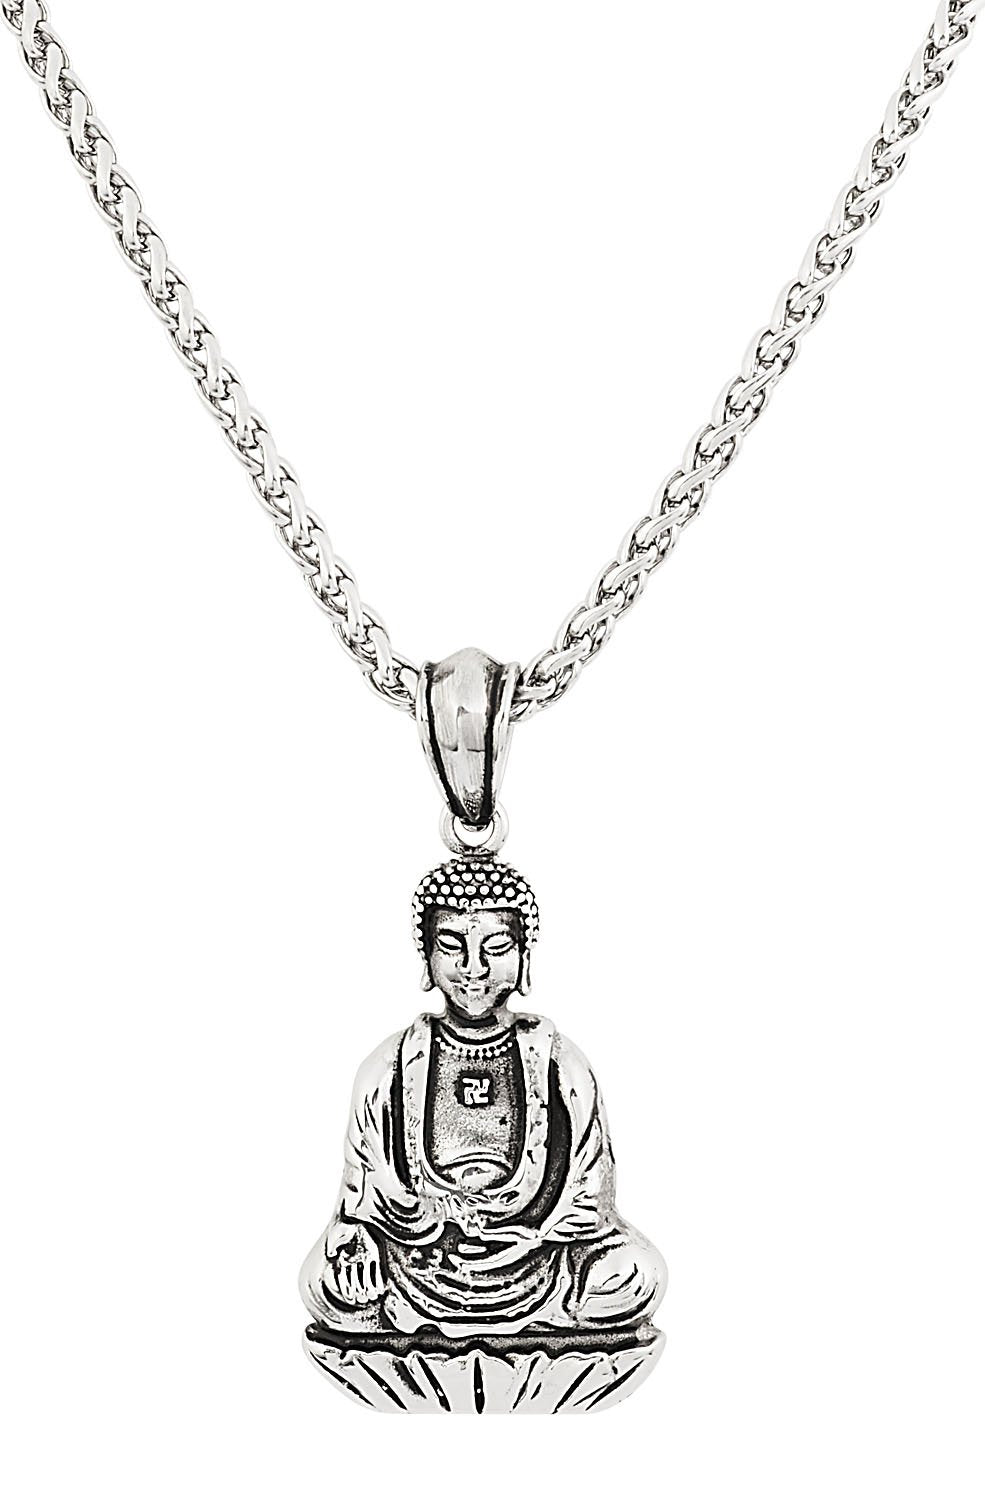 Stainless Steel Sitting Buddha Necklace